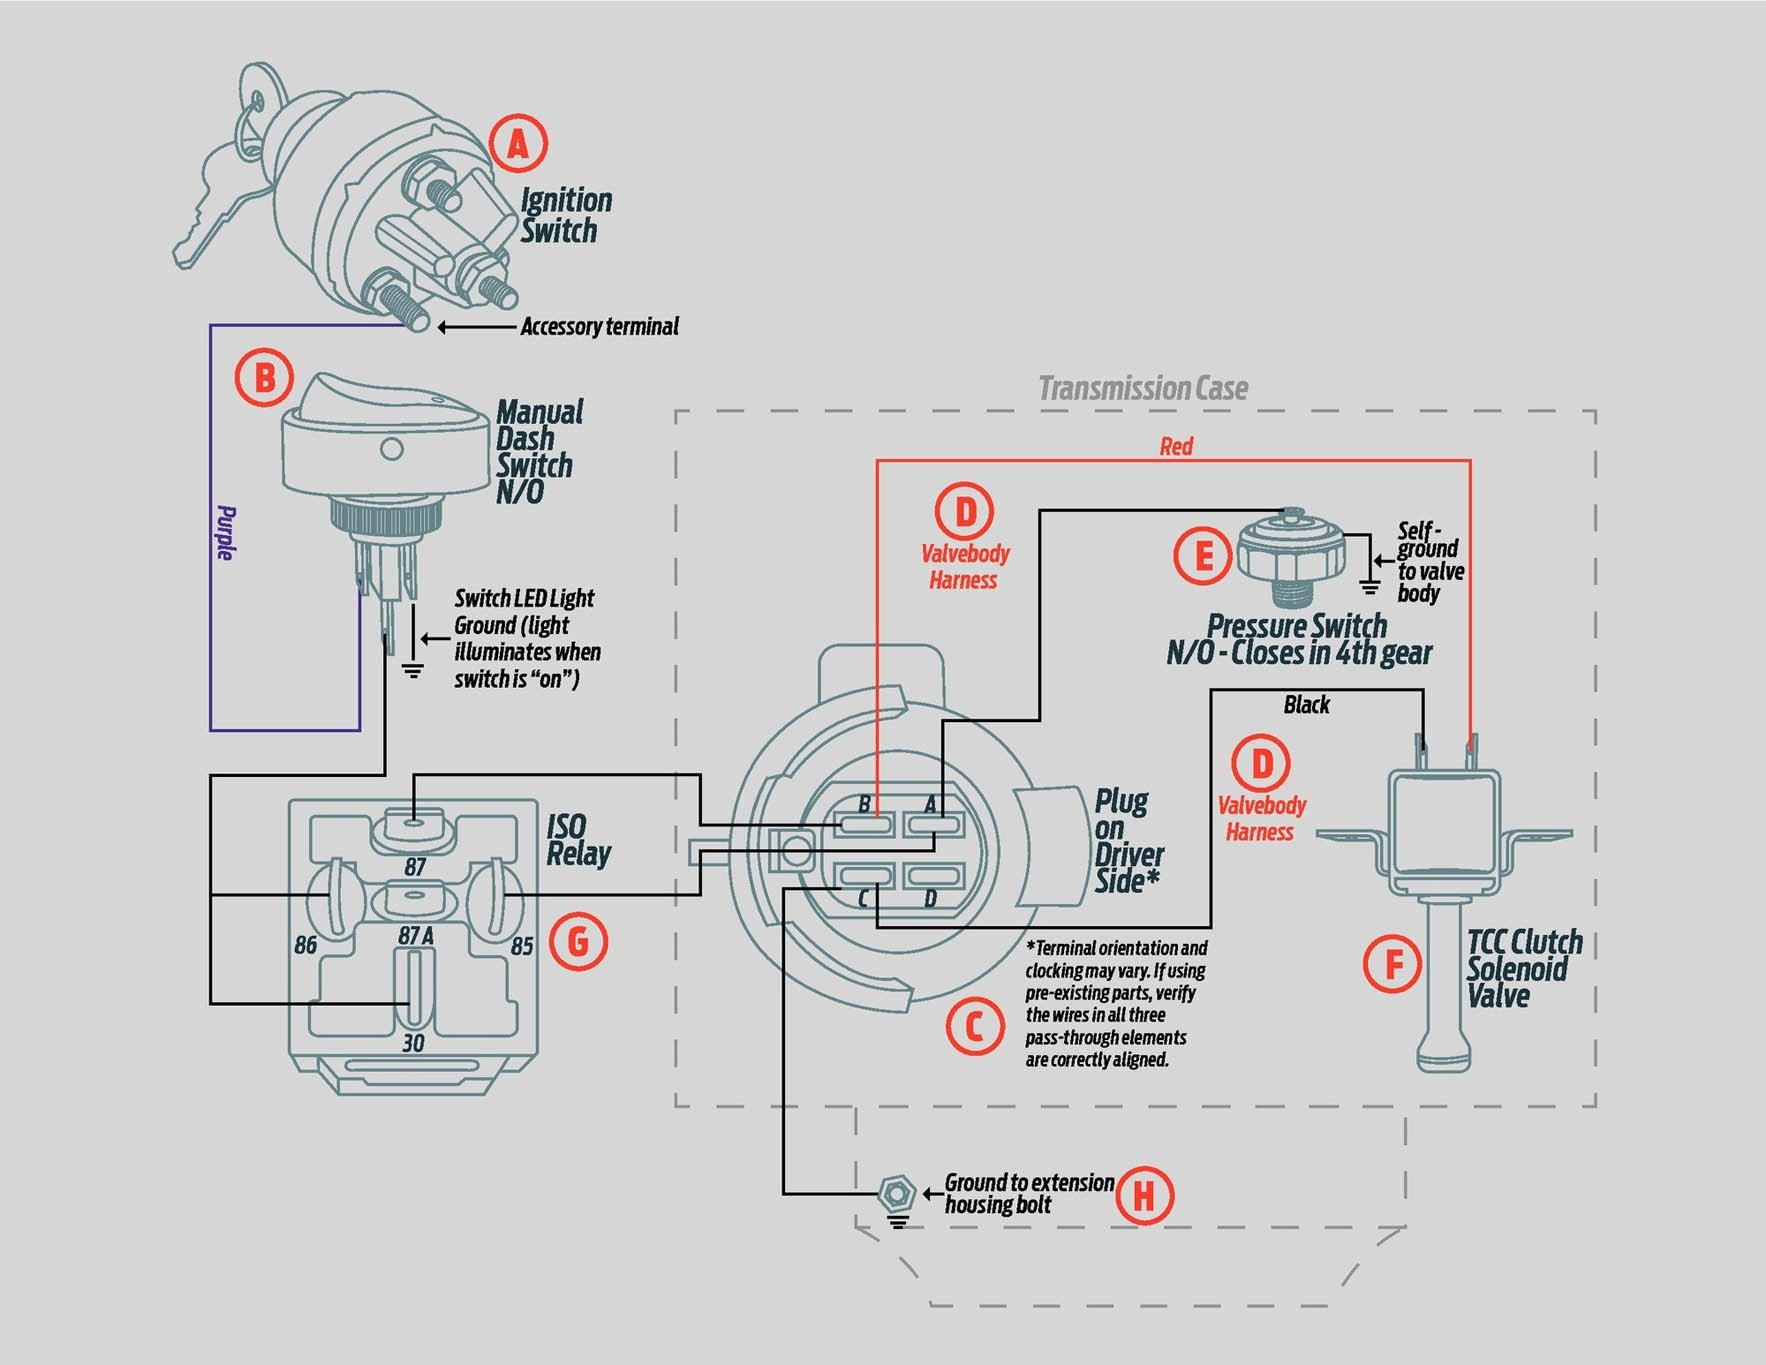 Lowrider Hydraulic Setup Diagram Hot Rod Rescue Lockup A 700 R4 torque Converter without A Puter Of Lowrider Hydraulic Setup Diagram